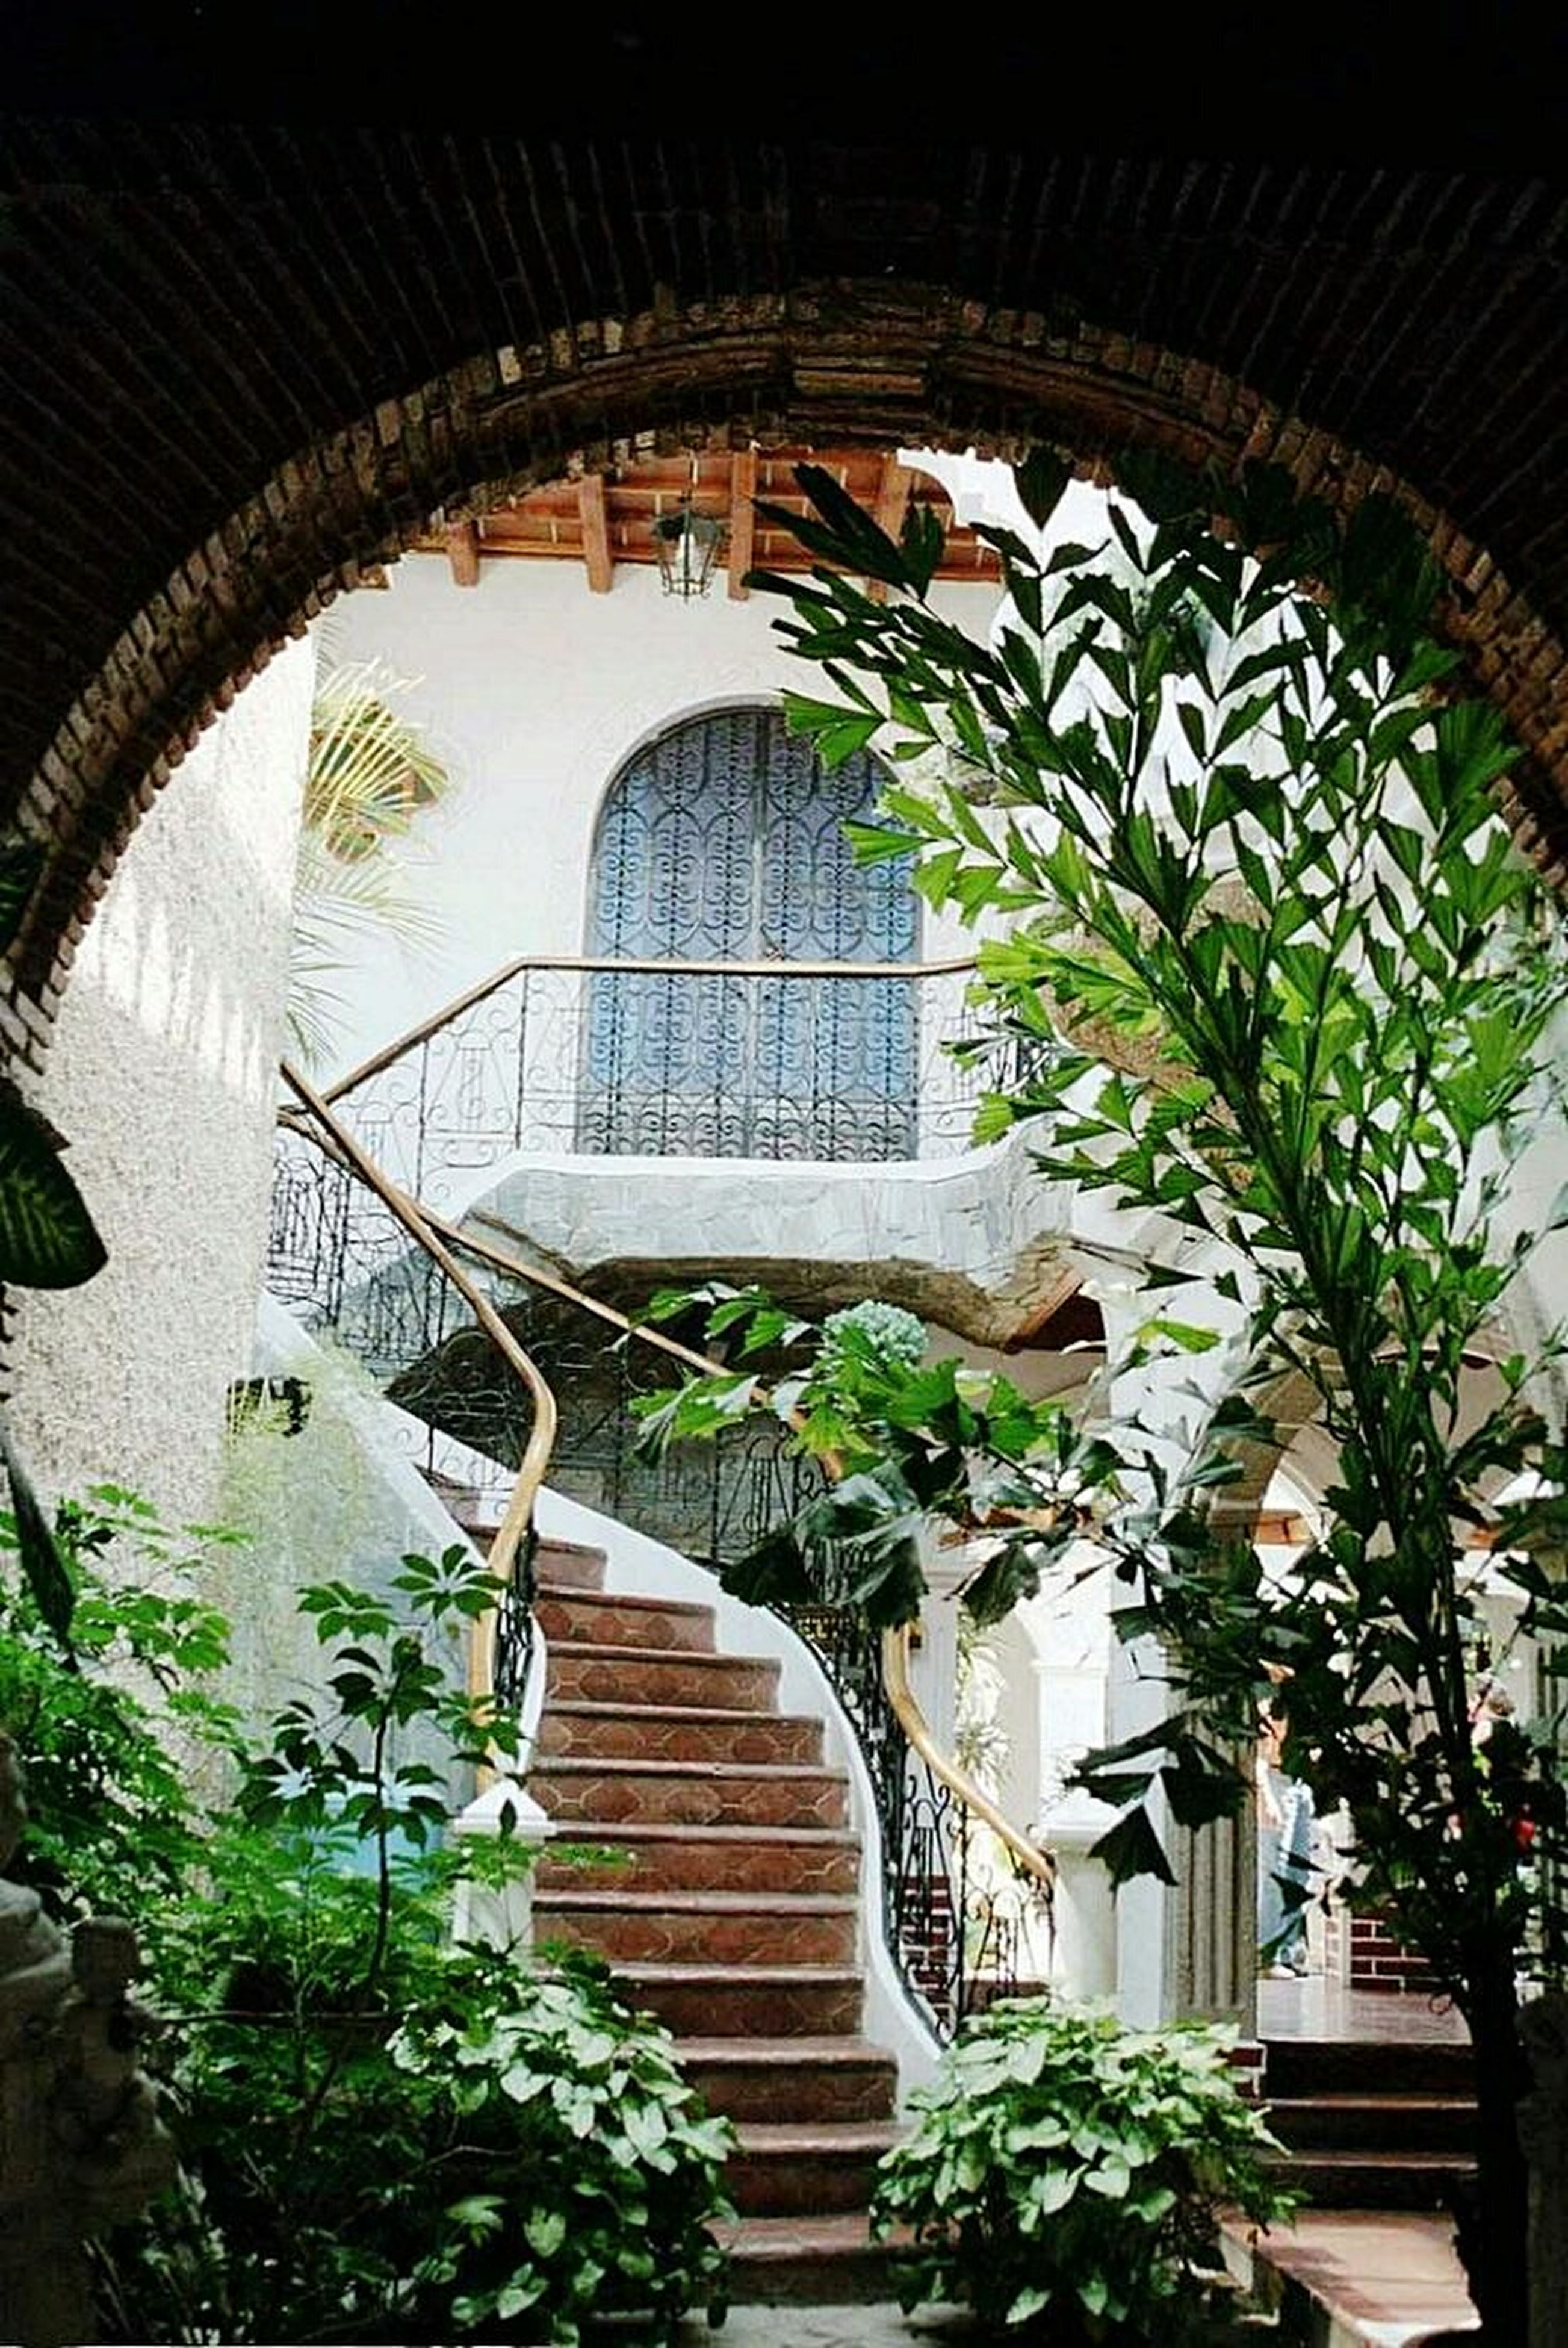 architecture, built structure, plant, building exterior, arch, steps, potted plant, house, steps and staircases, staircase, growth, railing, ivy, window, residential structure, tree, building, entrance, day, leaf